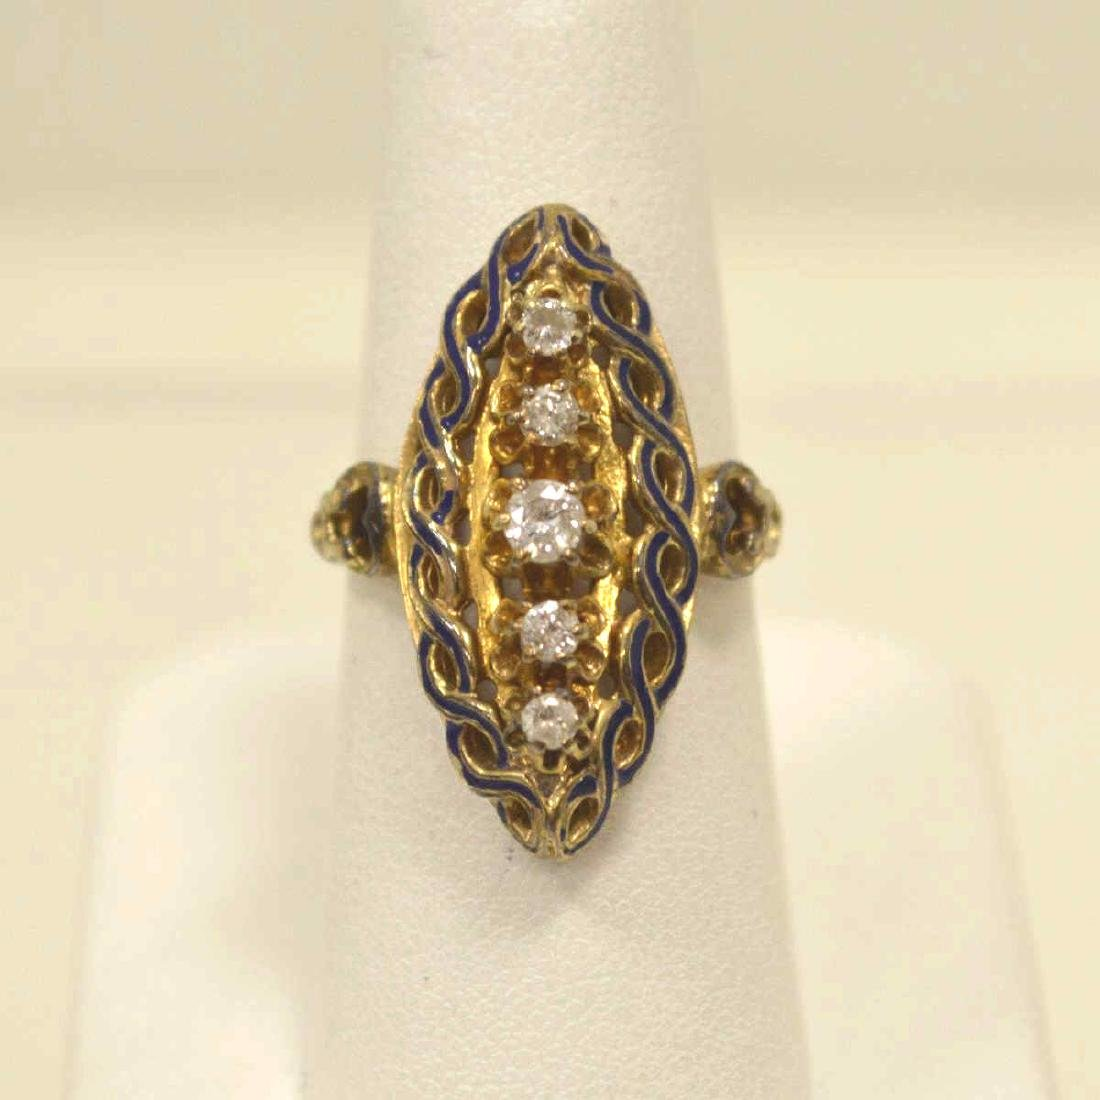 Vintage 14kt yellow gold diamond fashion ring